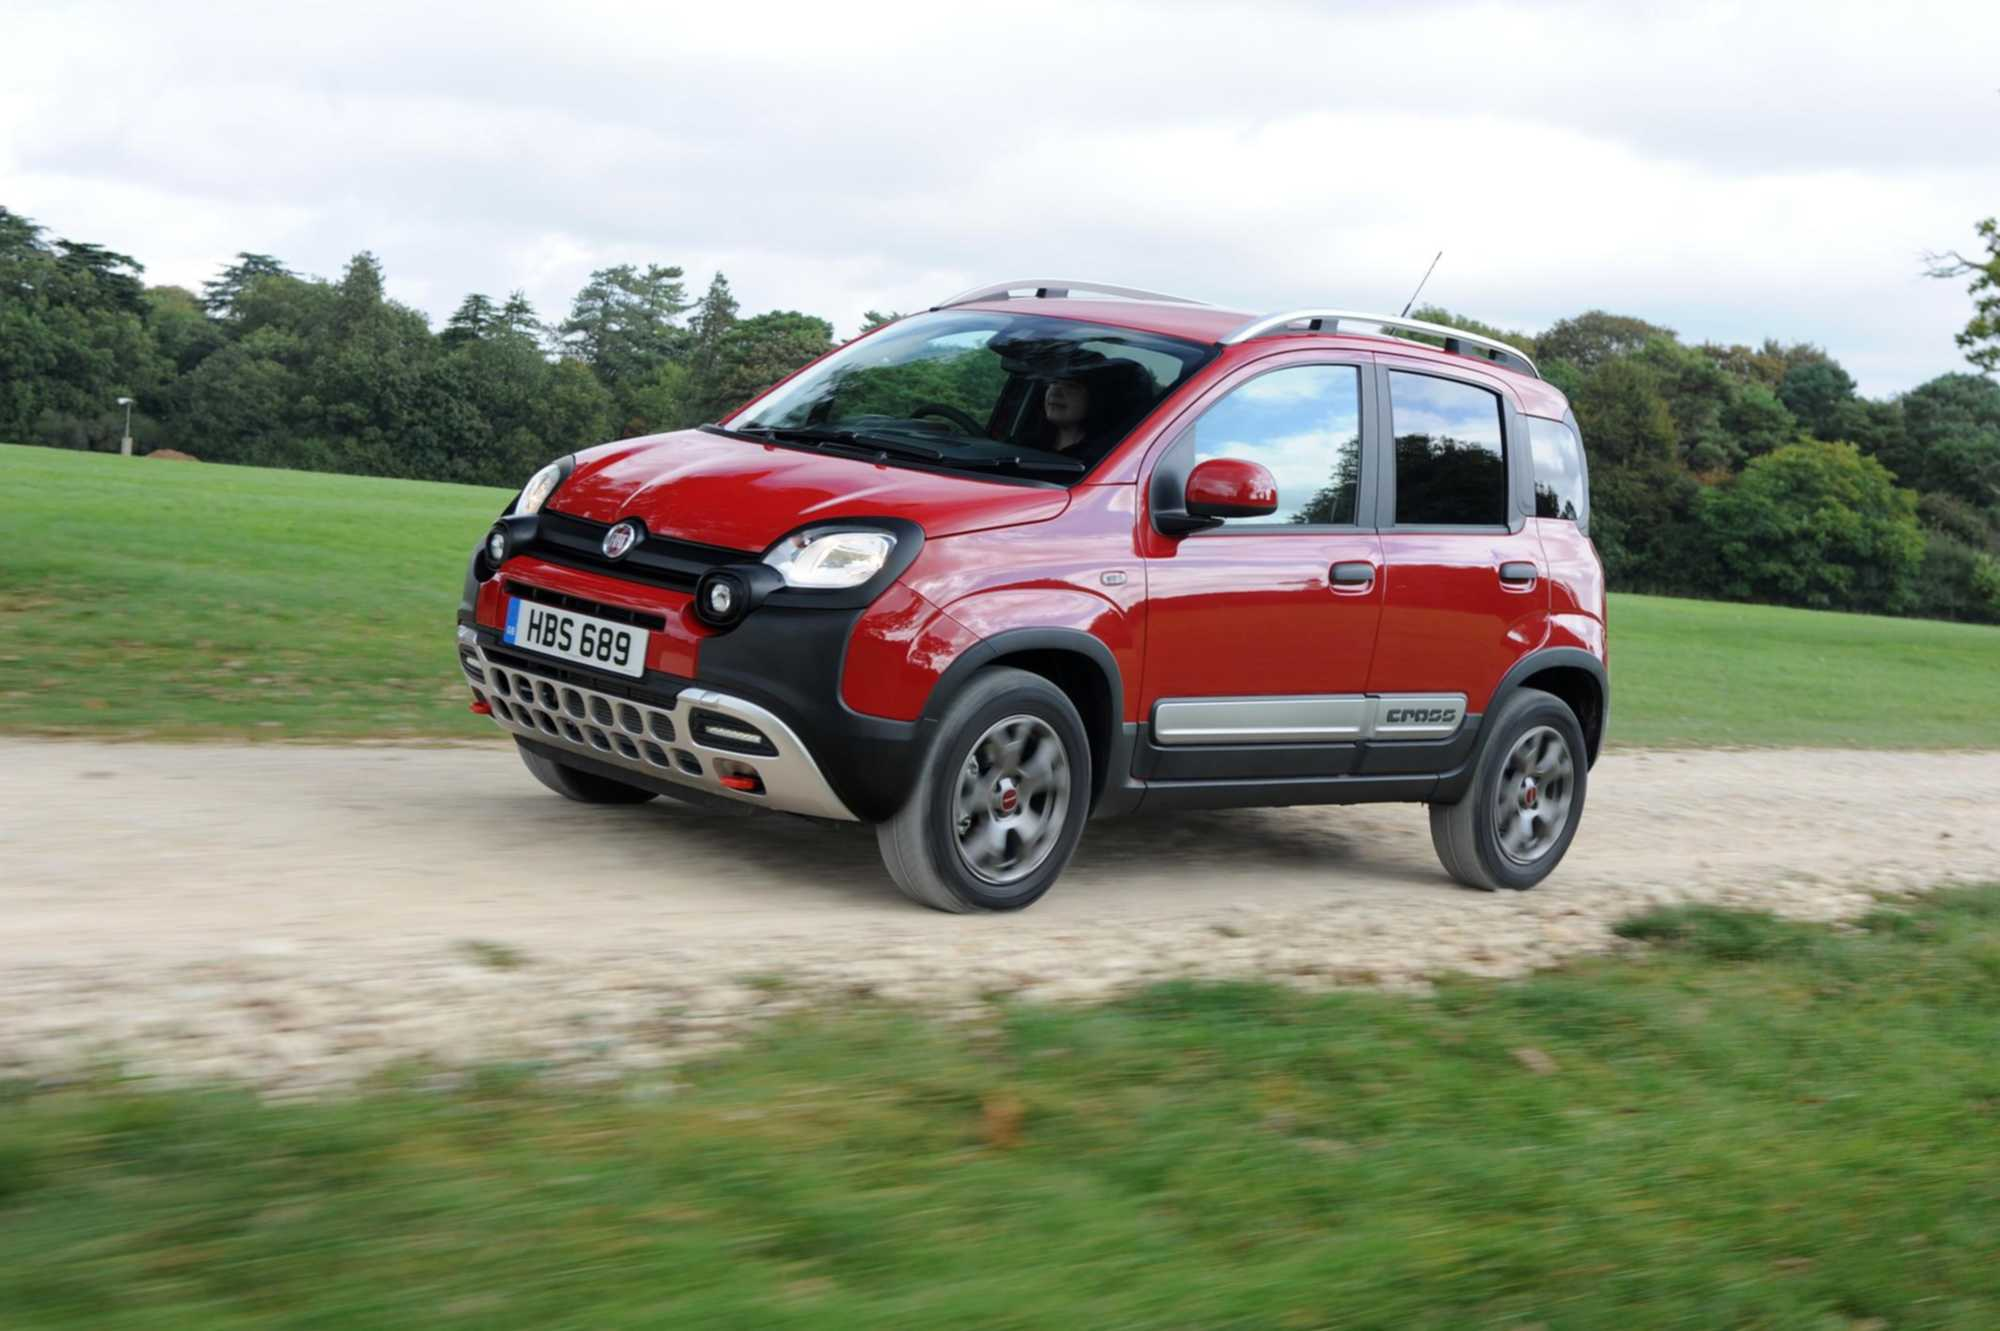 fiat panda cross 0 9 twinair launch report car keys. Black Bedroom Furniture Sets. Home Design Ideas